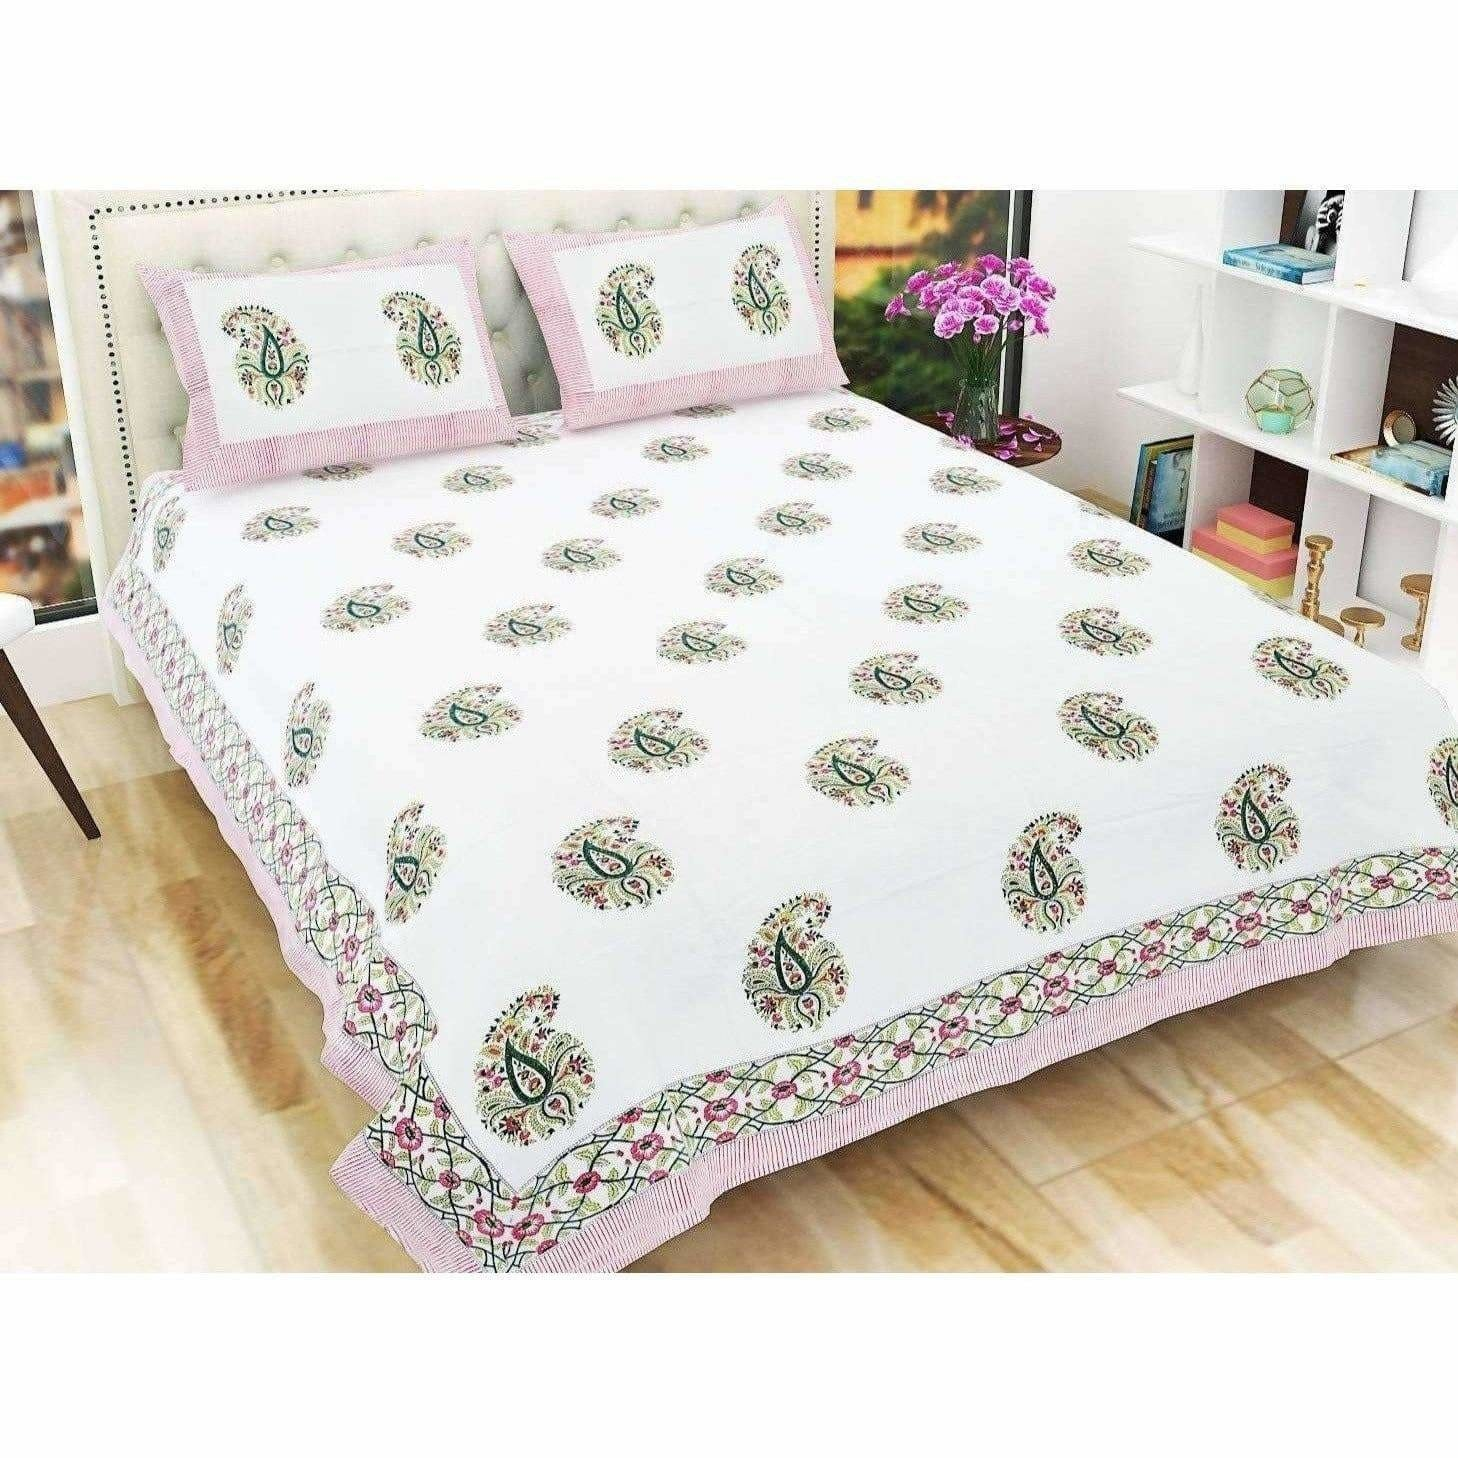 Paisley Hand Block Printed Double 90x108 Inches Bedspread with 2 Pillow Covers